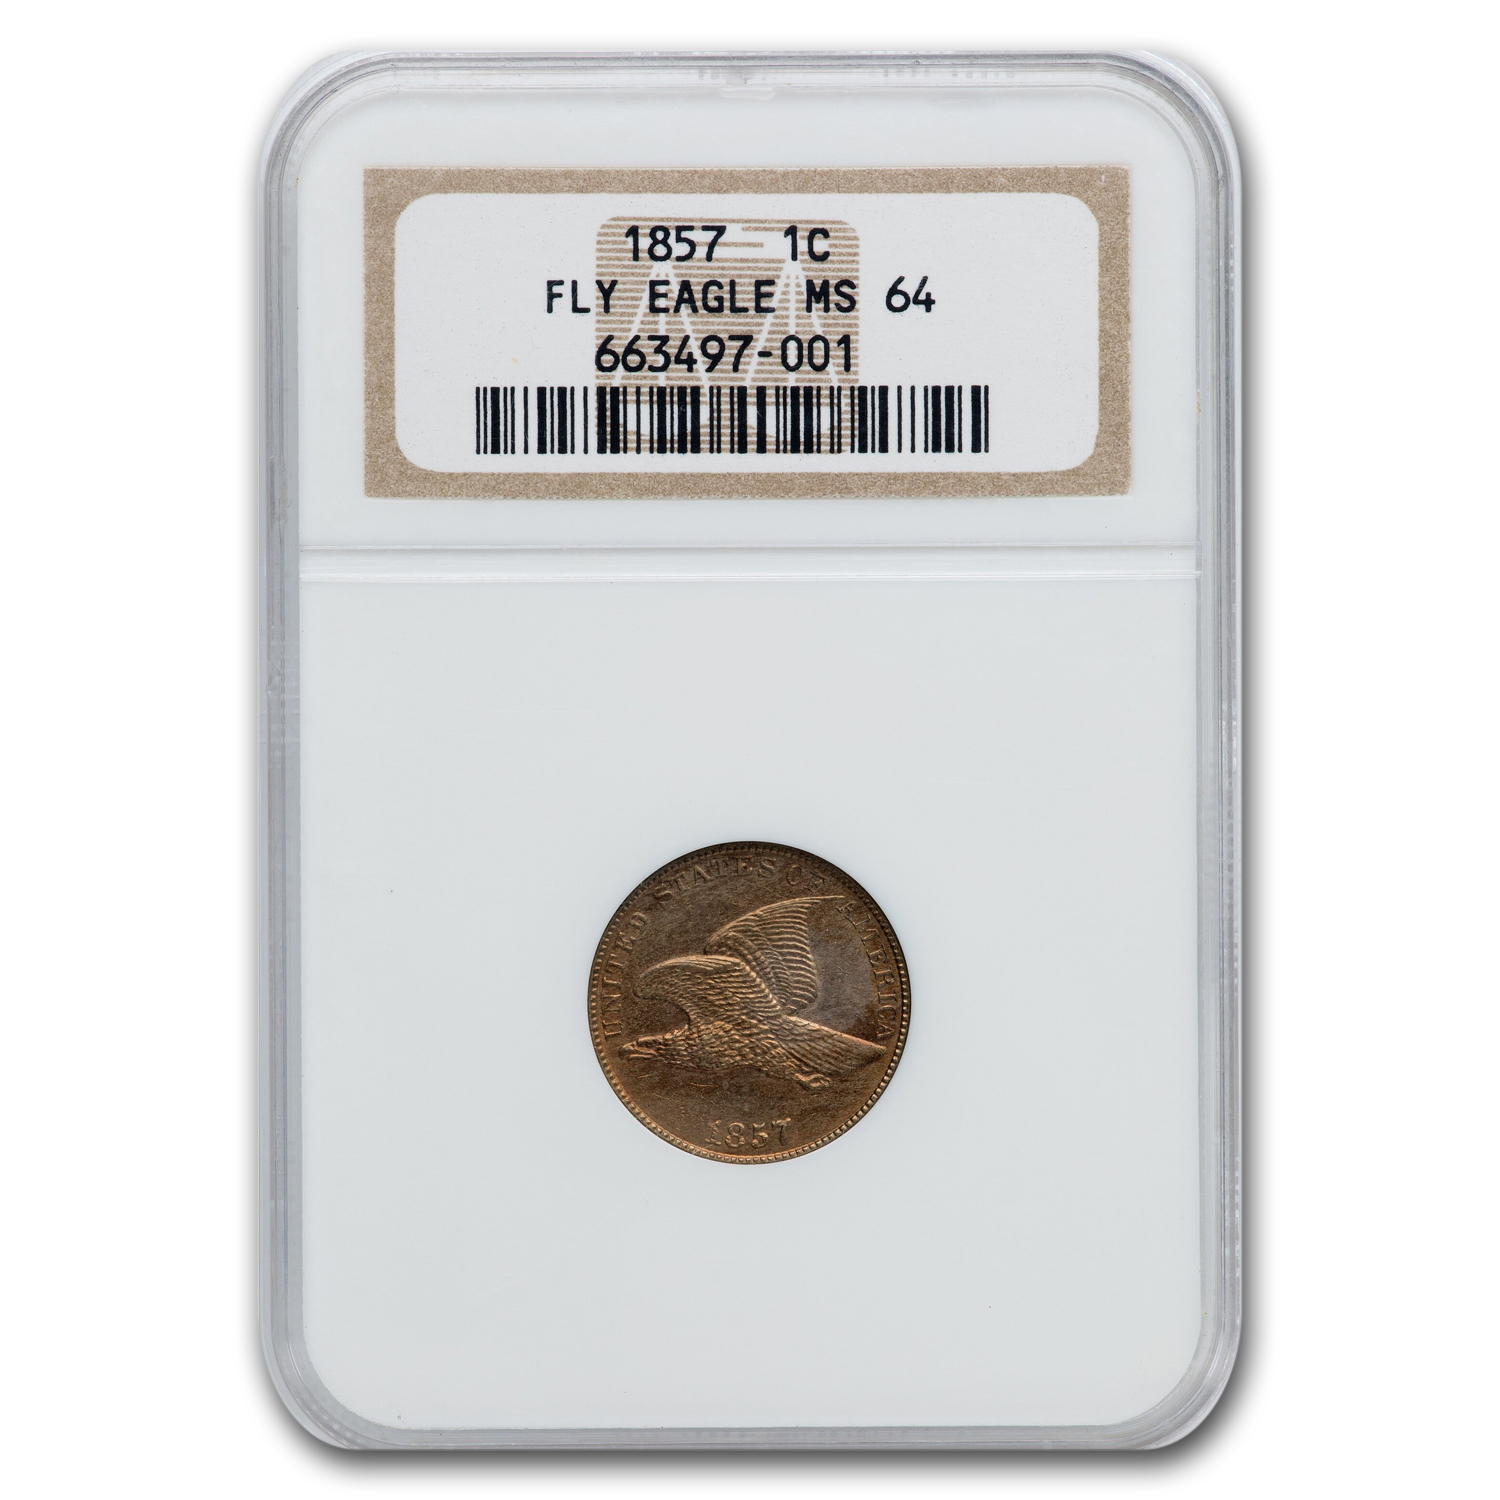 1857 Flying Eagle Cent MS-64 NGC